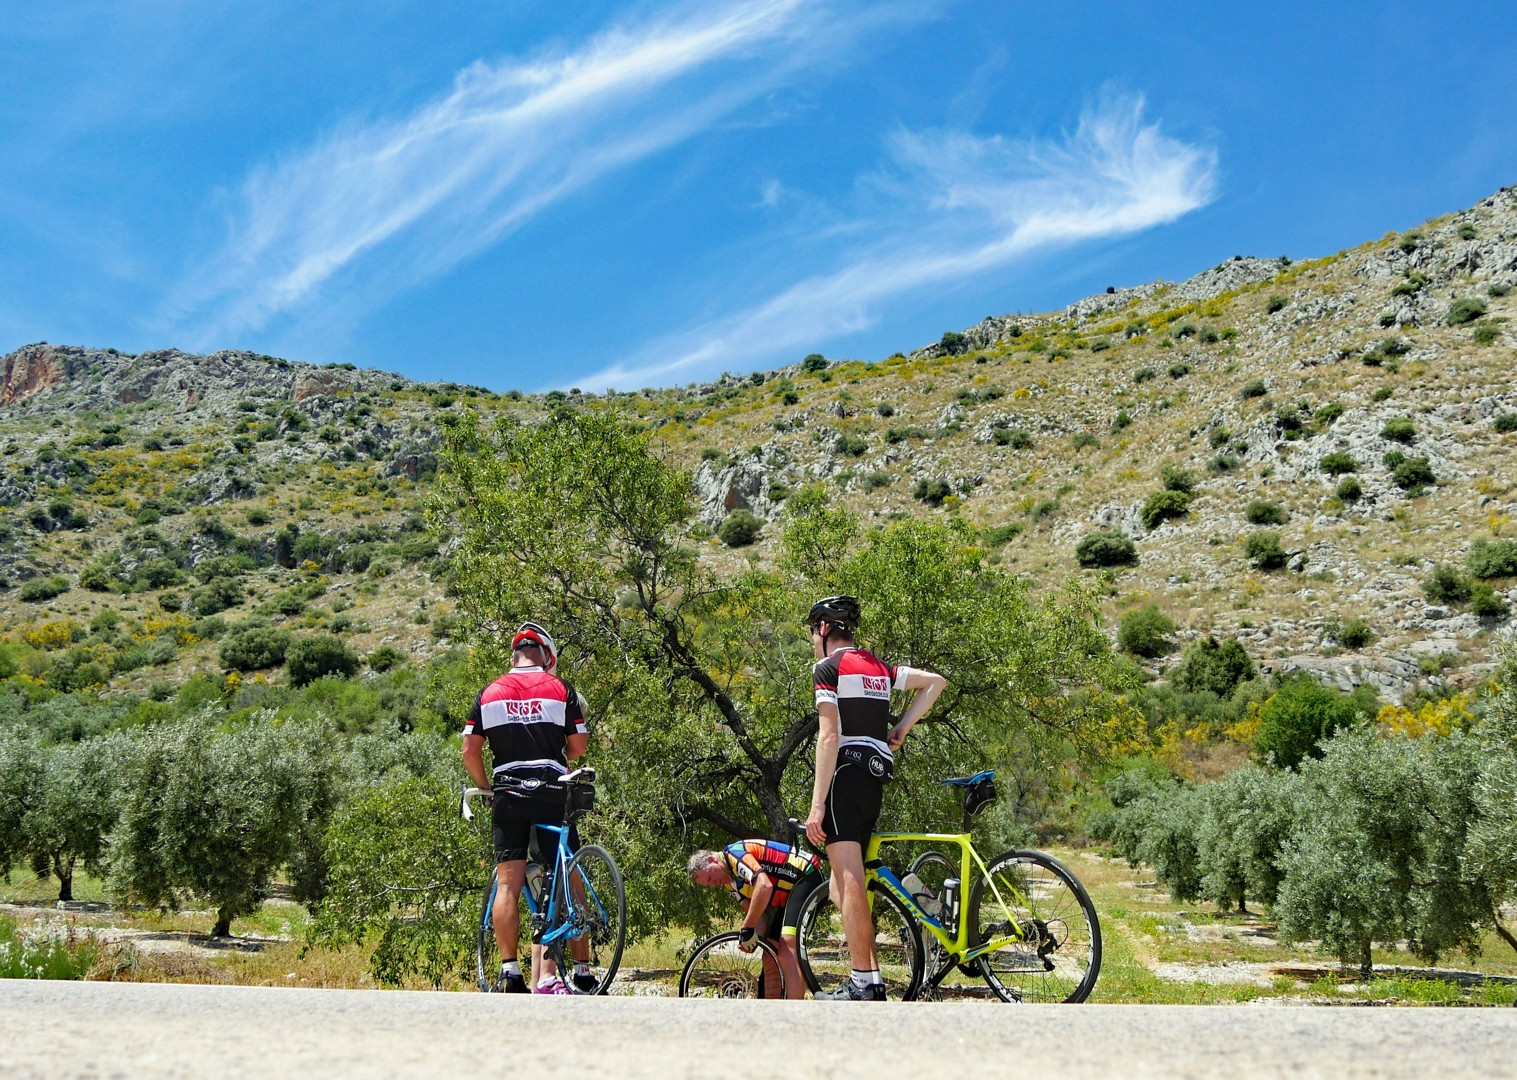 scenic-road-cycling-basque-country.jpg - Spain - Del Norte al Sur - Basque Country to Andalucia - Guided Road Cycling Holiday - Road Cycling